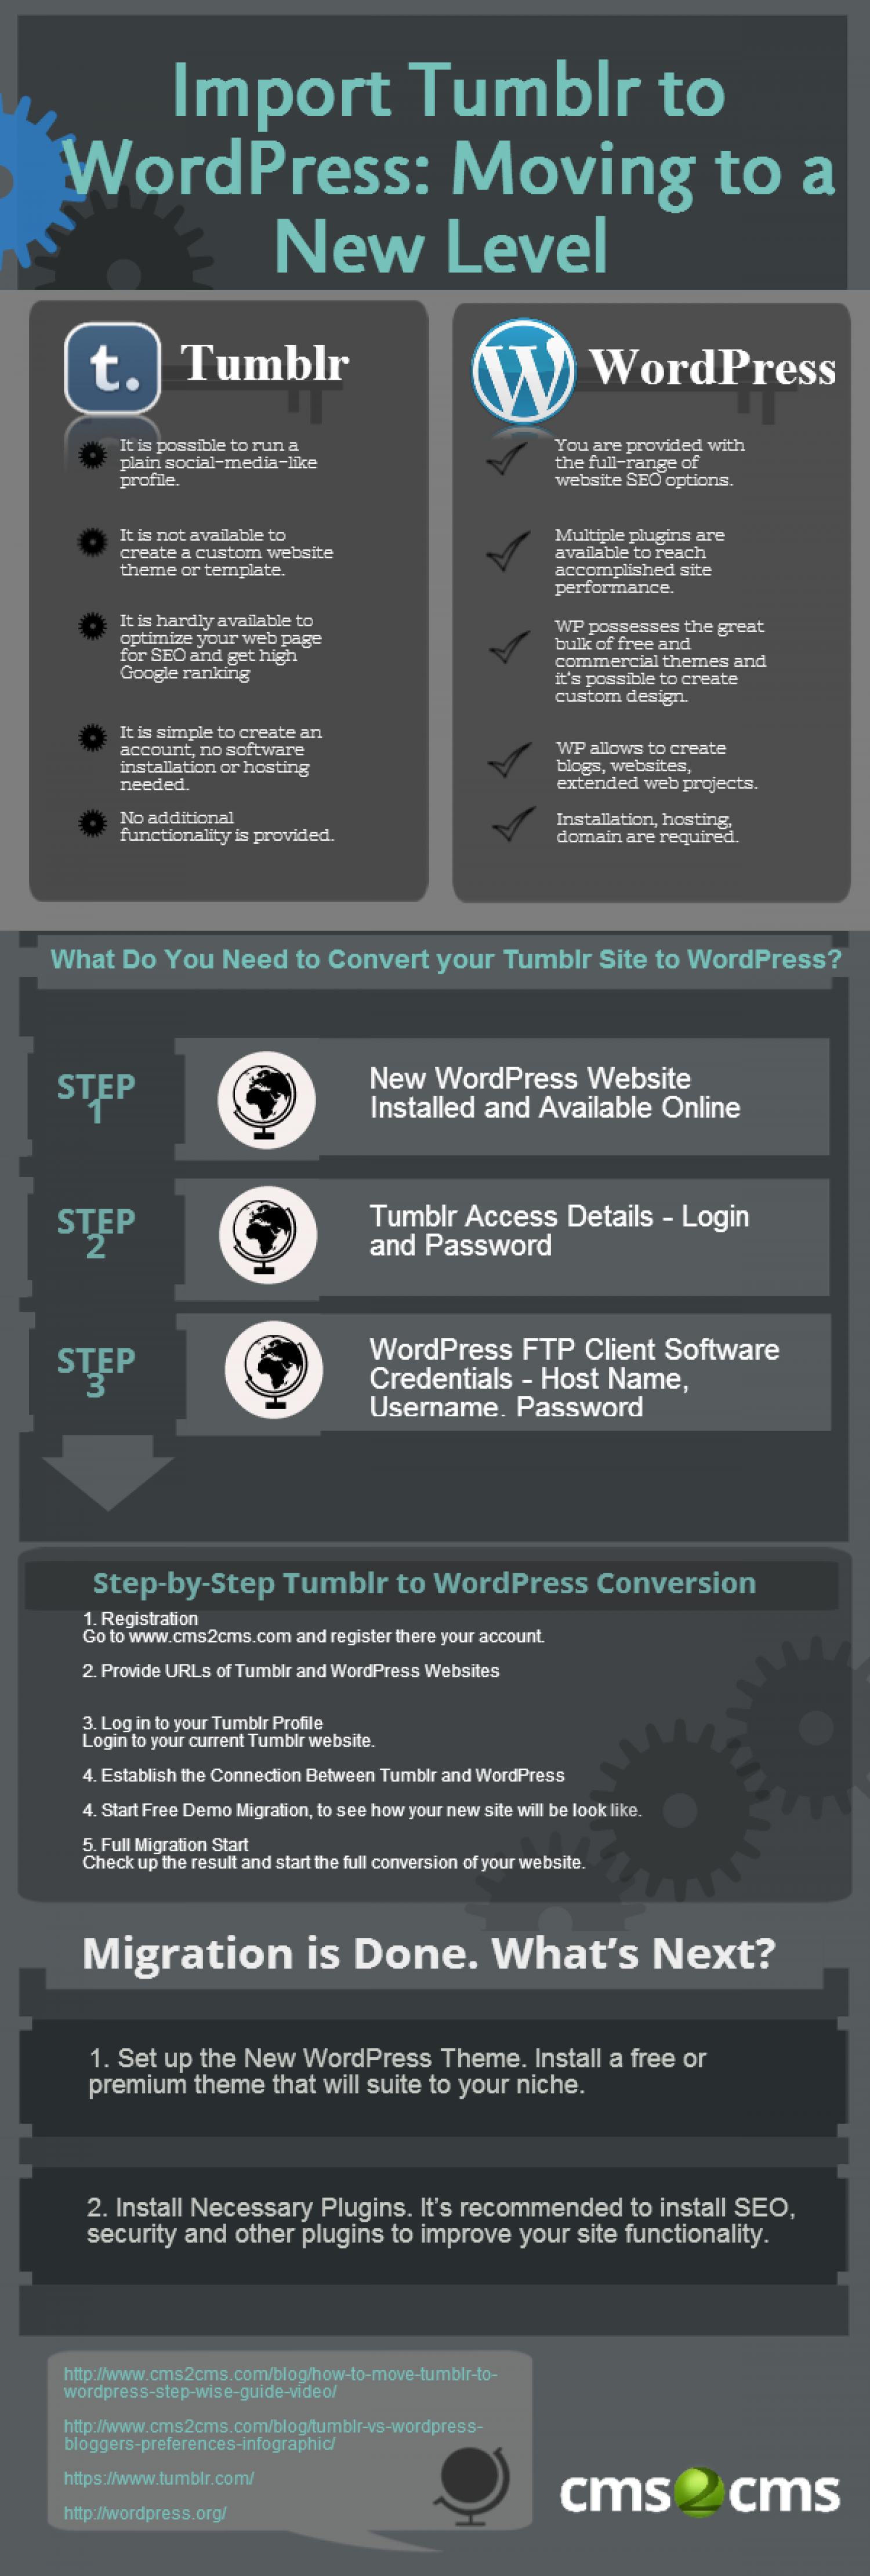 Import Tumblr to WordPress: Moving to a New Level Infographic